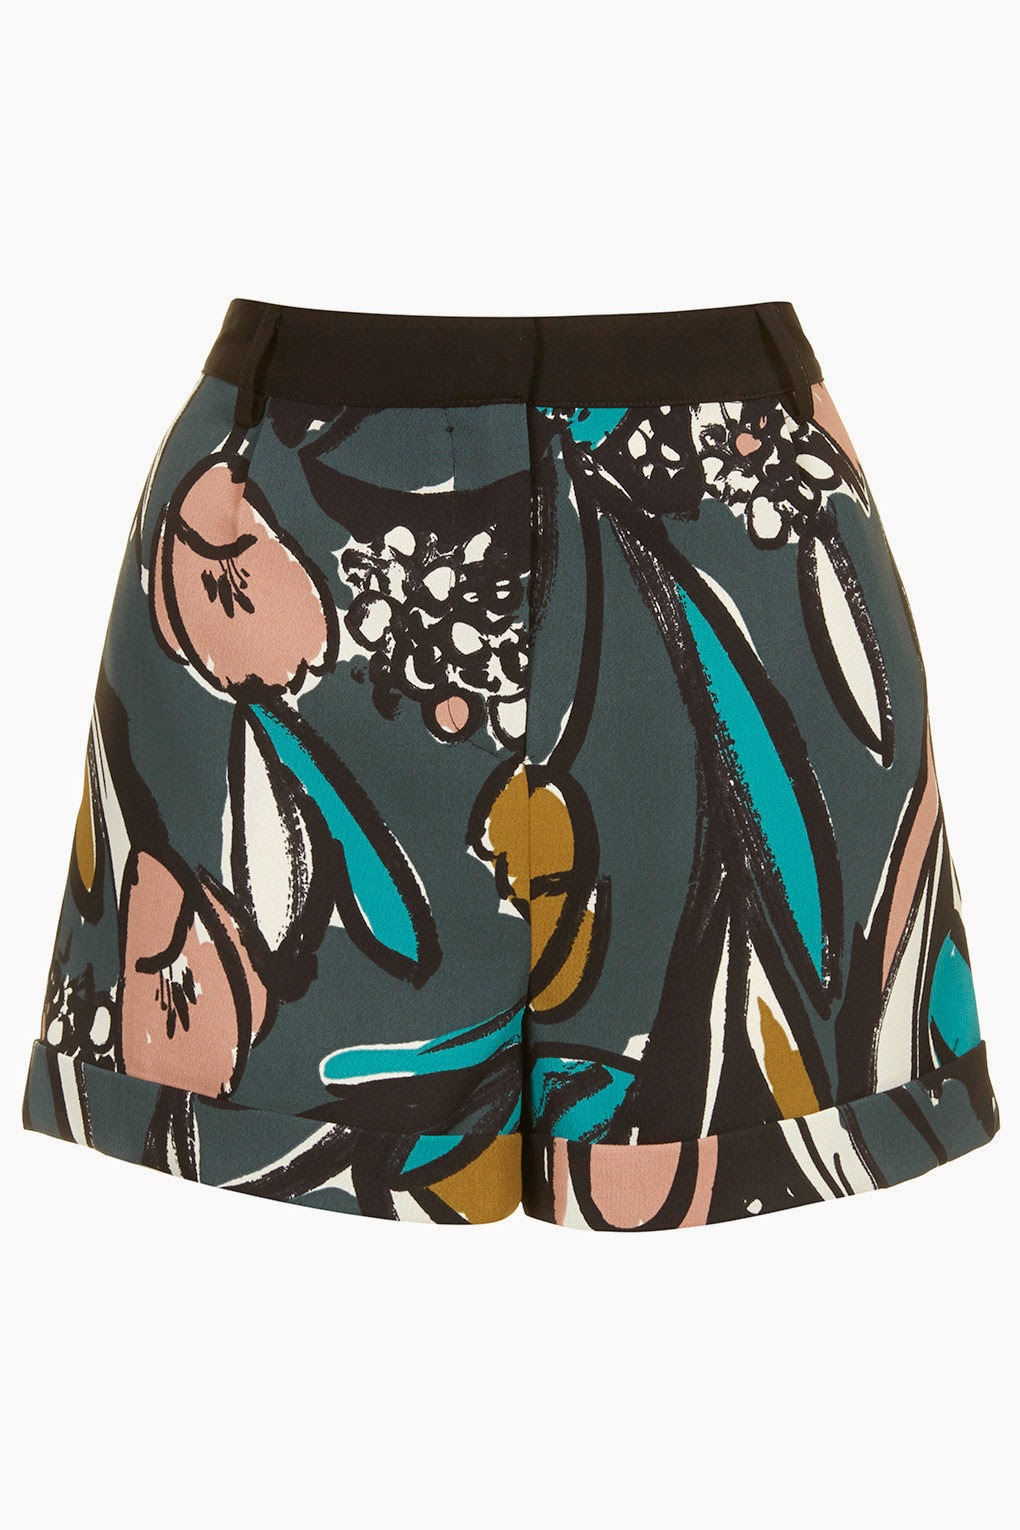 topshop flower shorts,